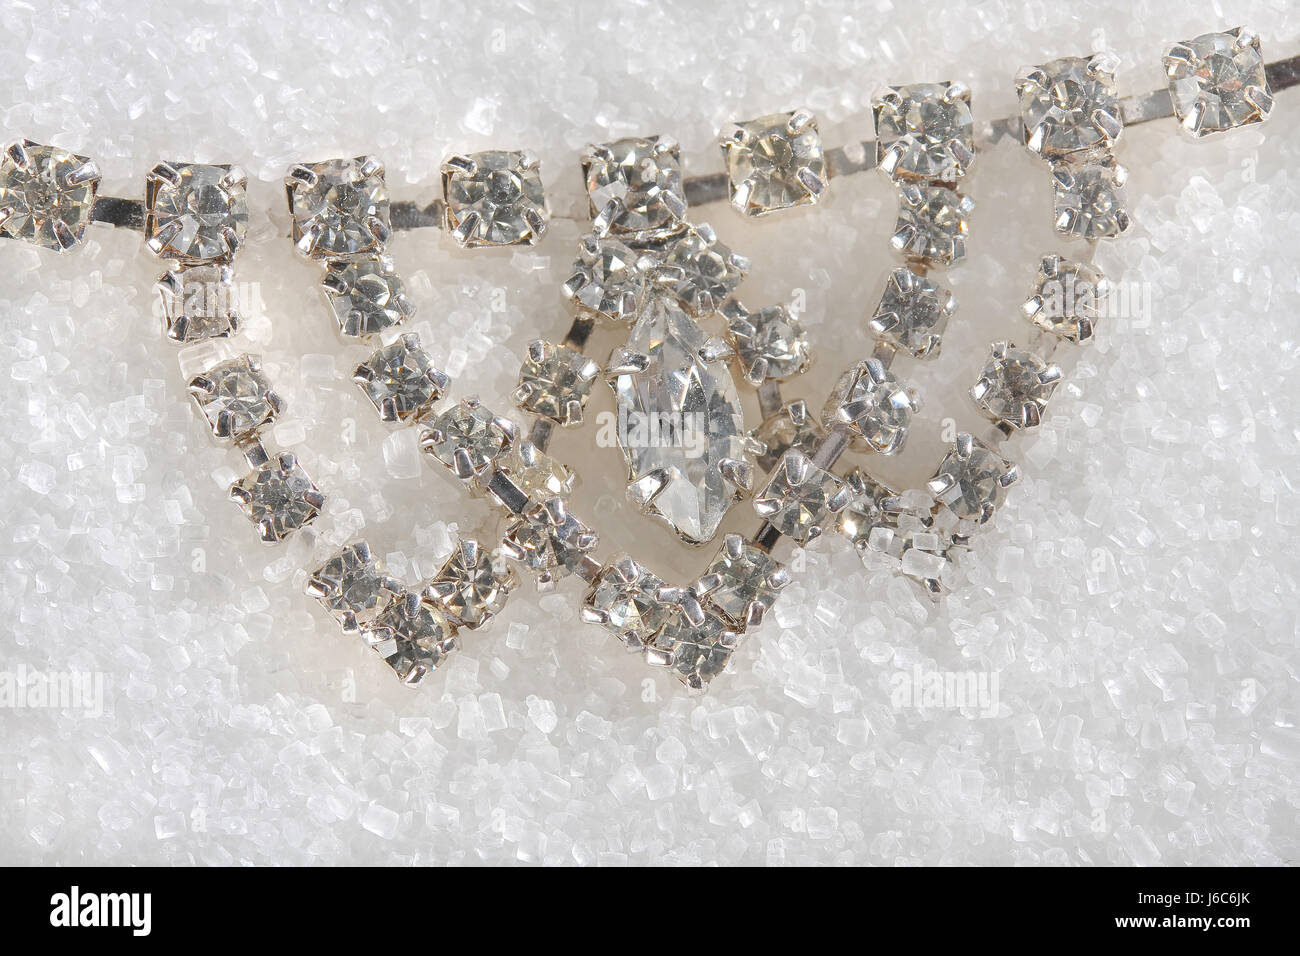 Collier Schmuck Strass Schmuck Stock Photos Strass Schmuck Stock Images Alamy